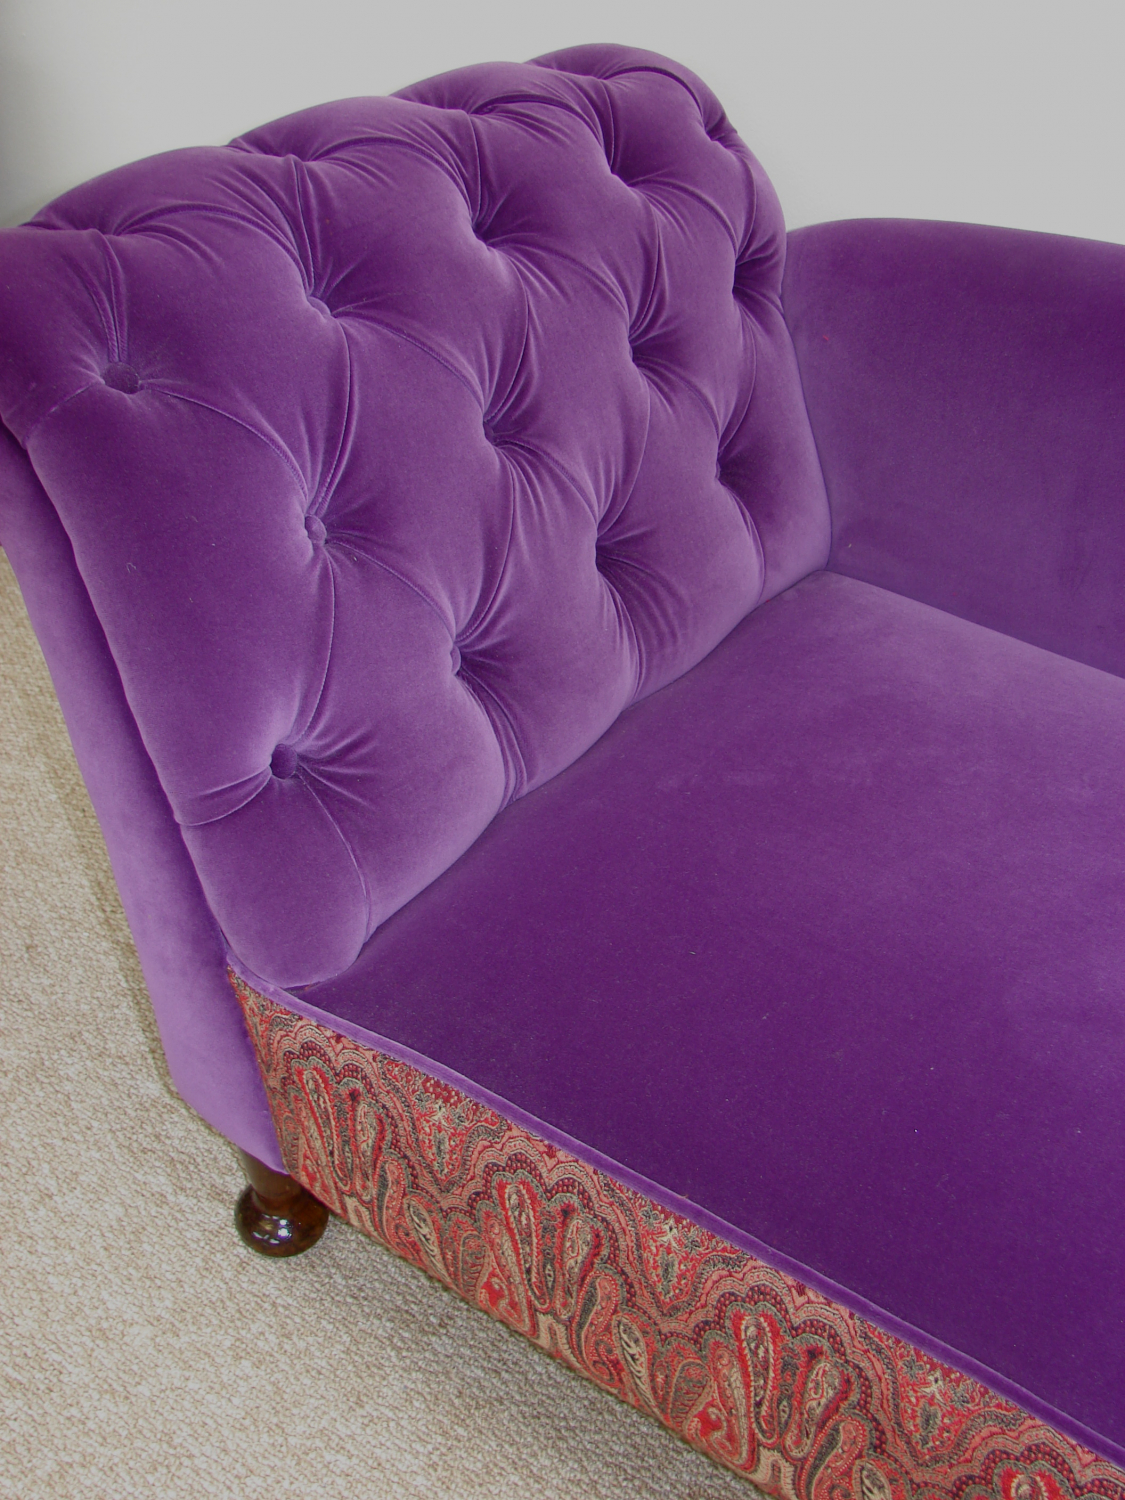 Victorian chaise with Mid Century Persian fabric border